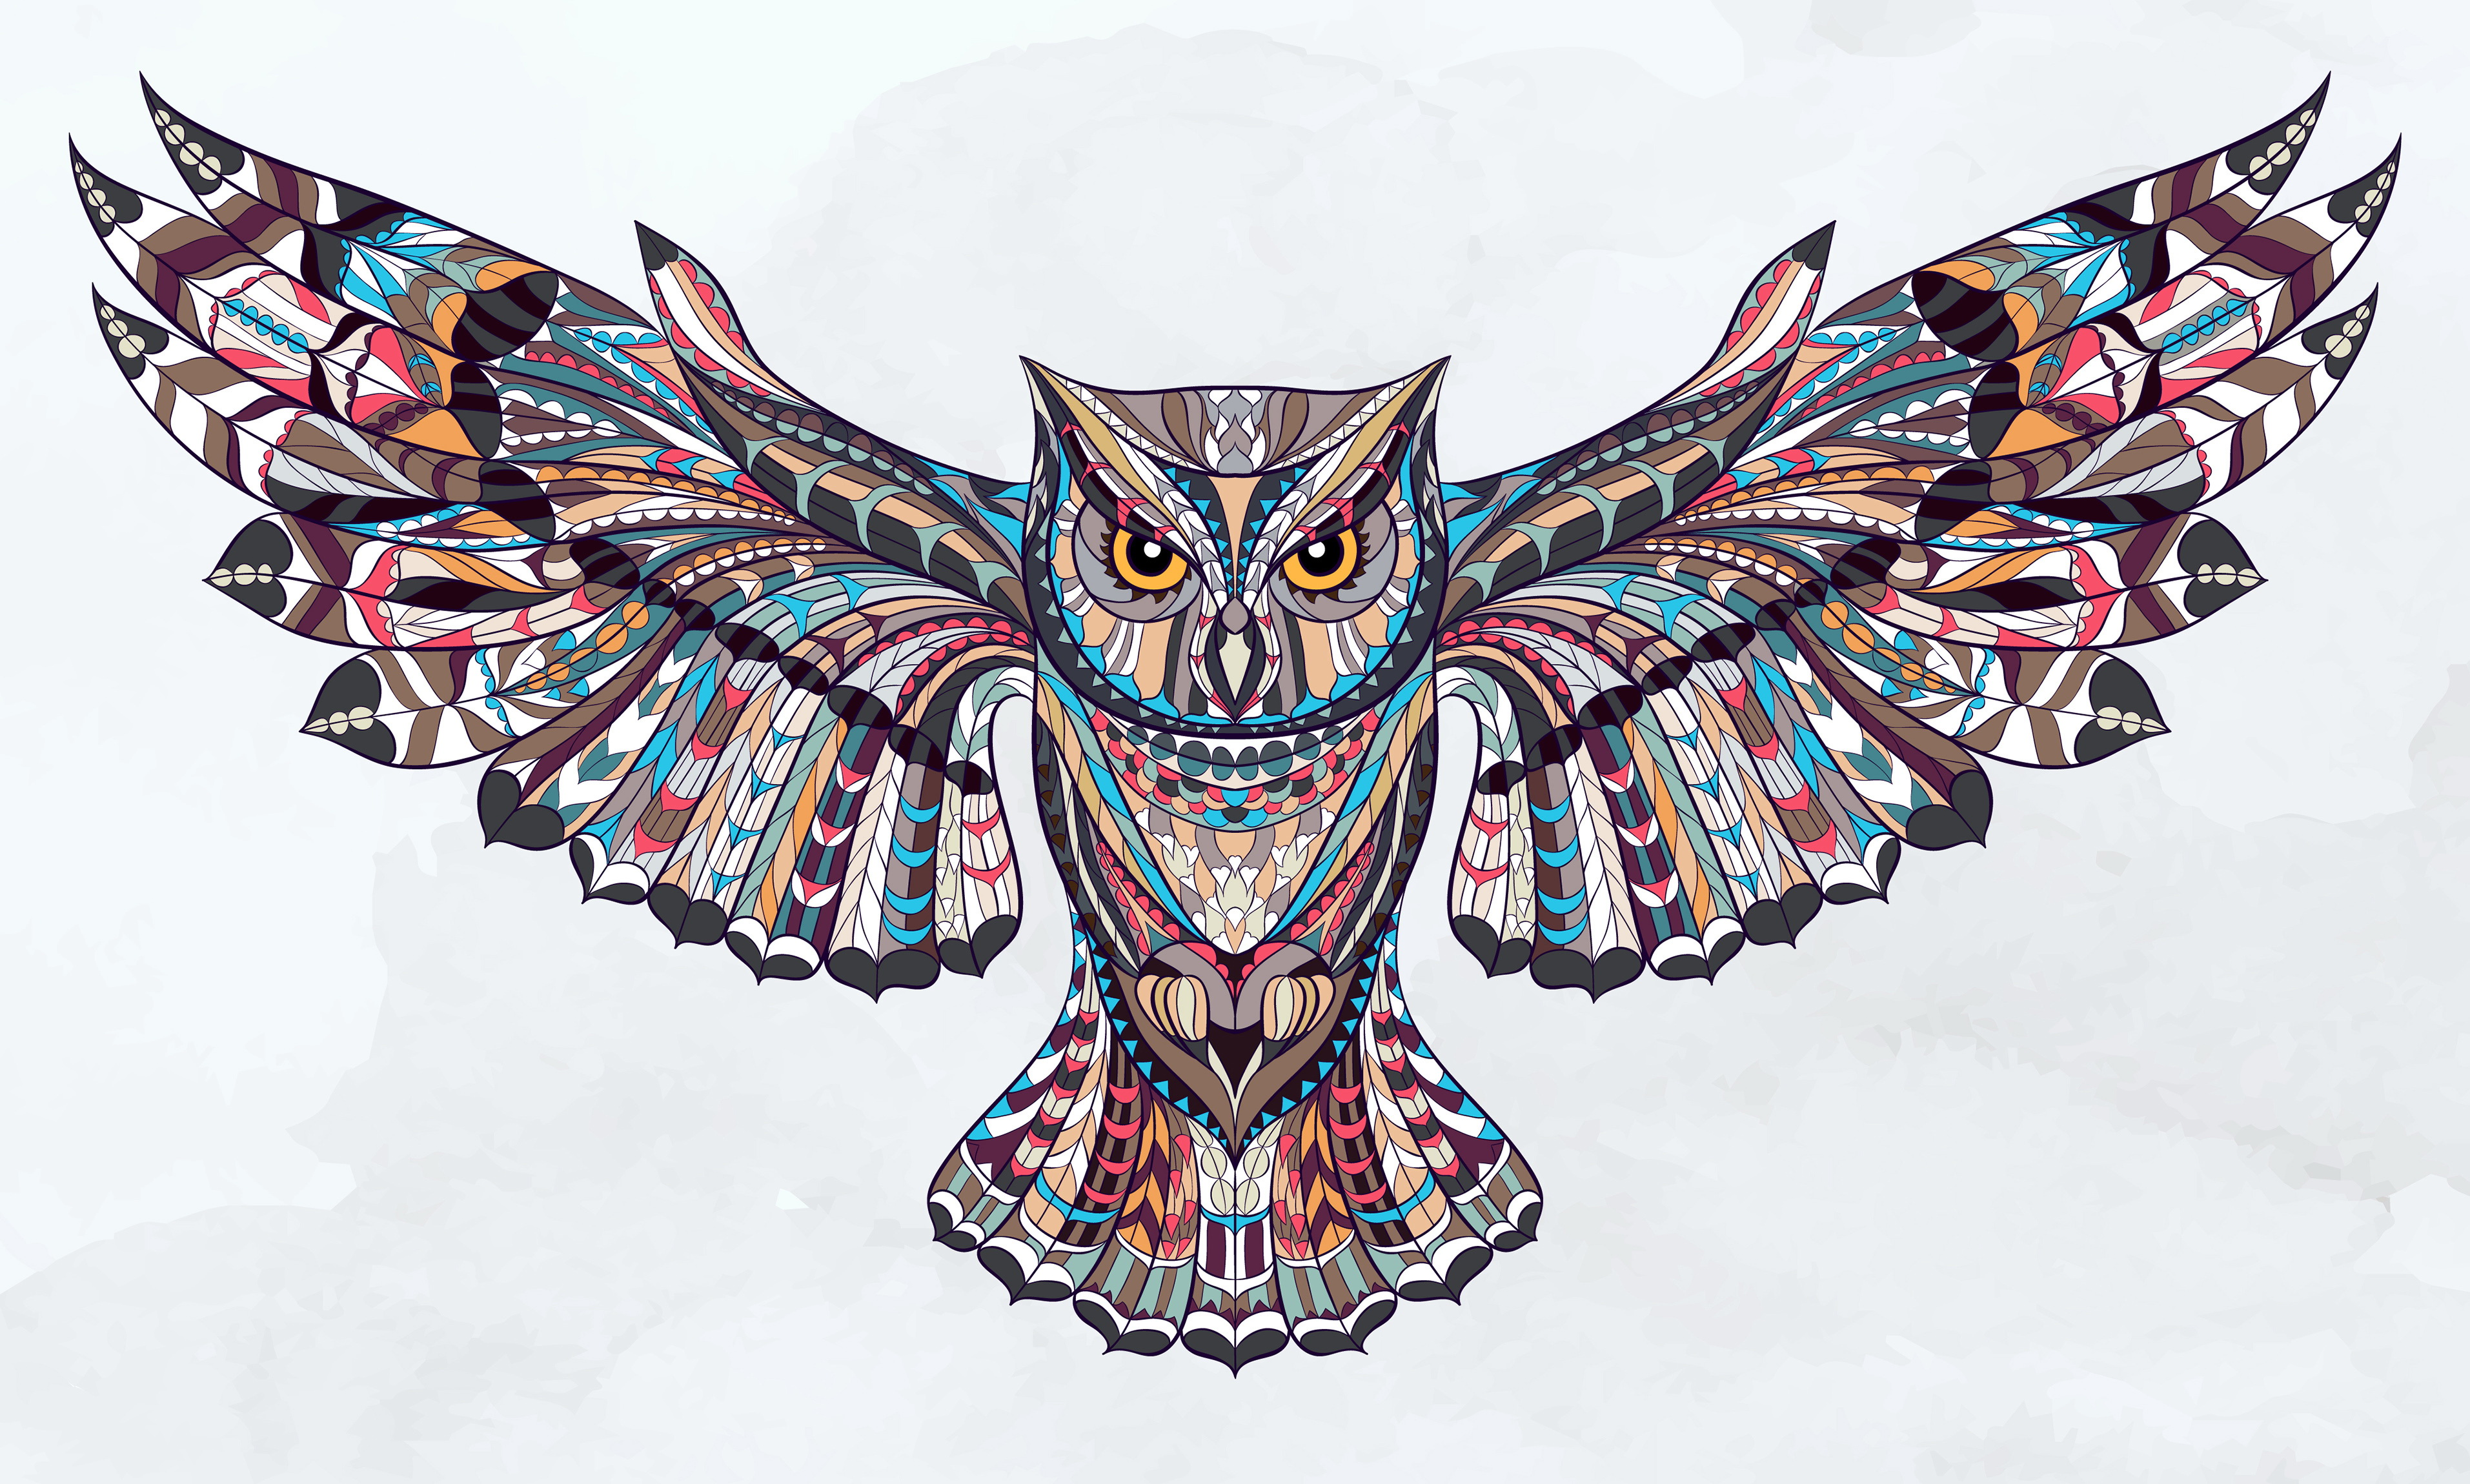 Wallpaper Owl Posted By Sarah Sellers